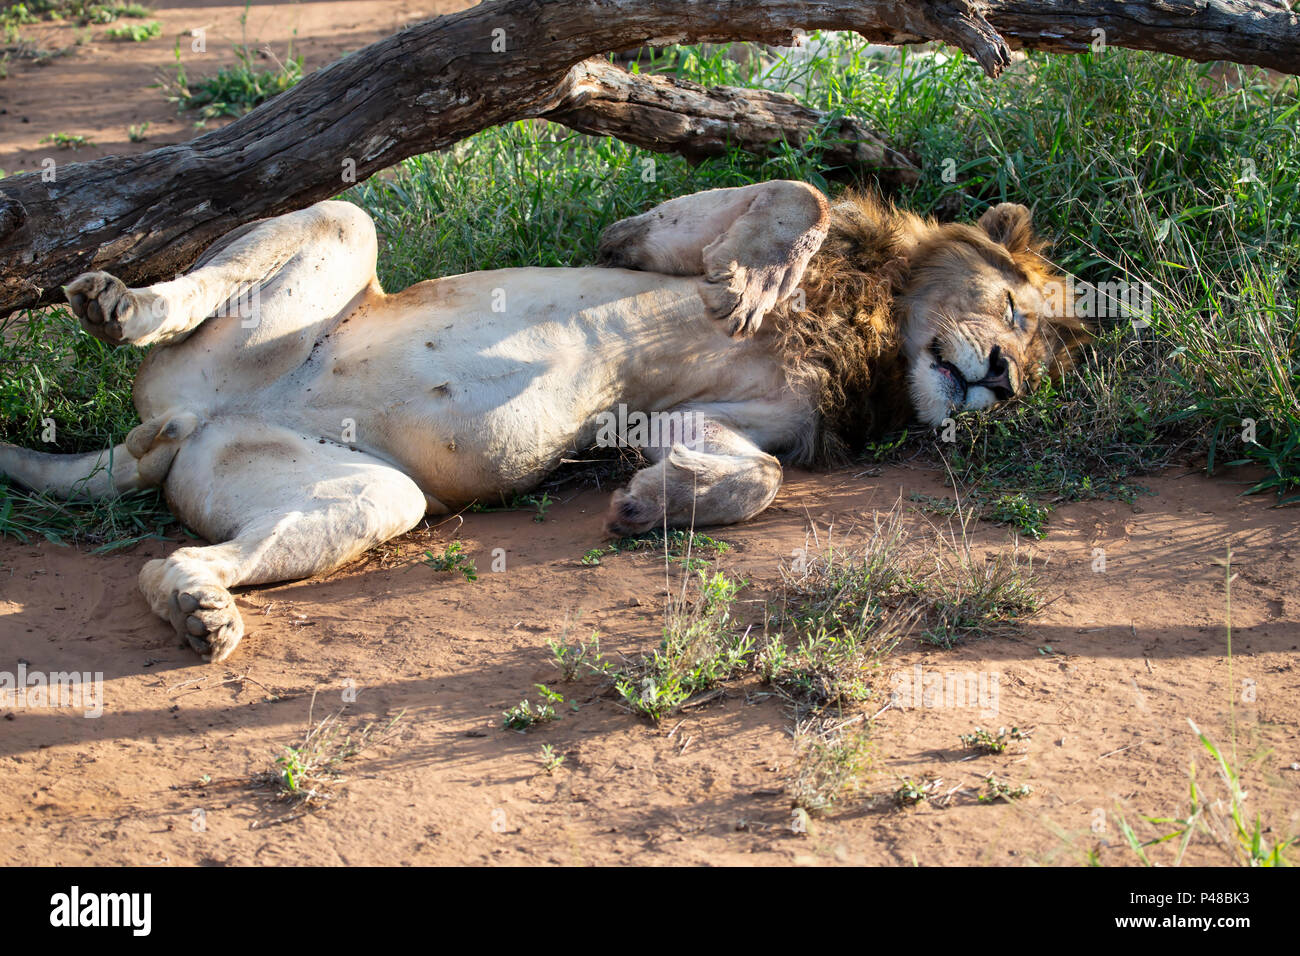 Male Lion Panthera leo lying sleeping in an ungainly position - Stock Image